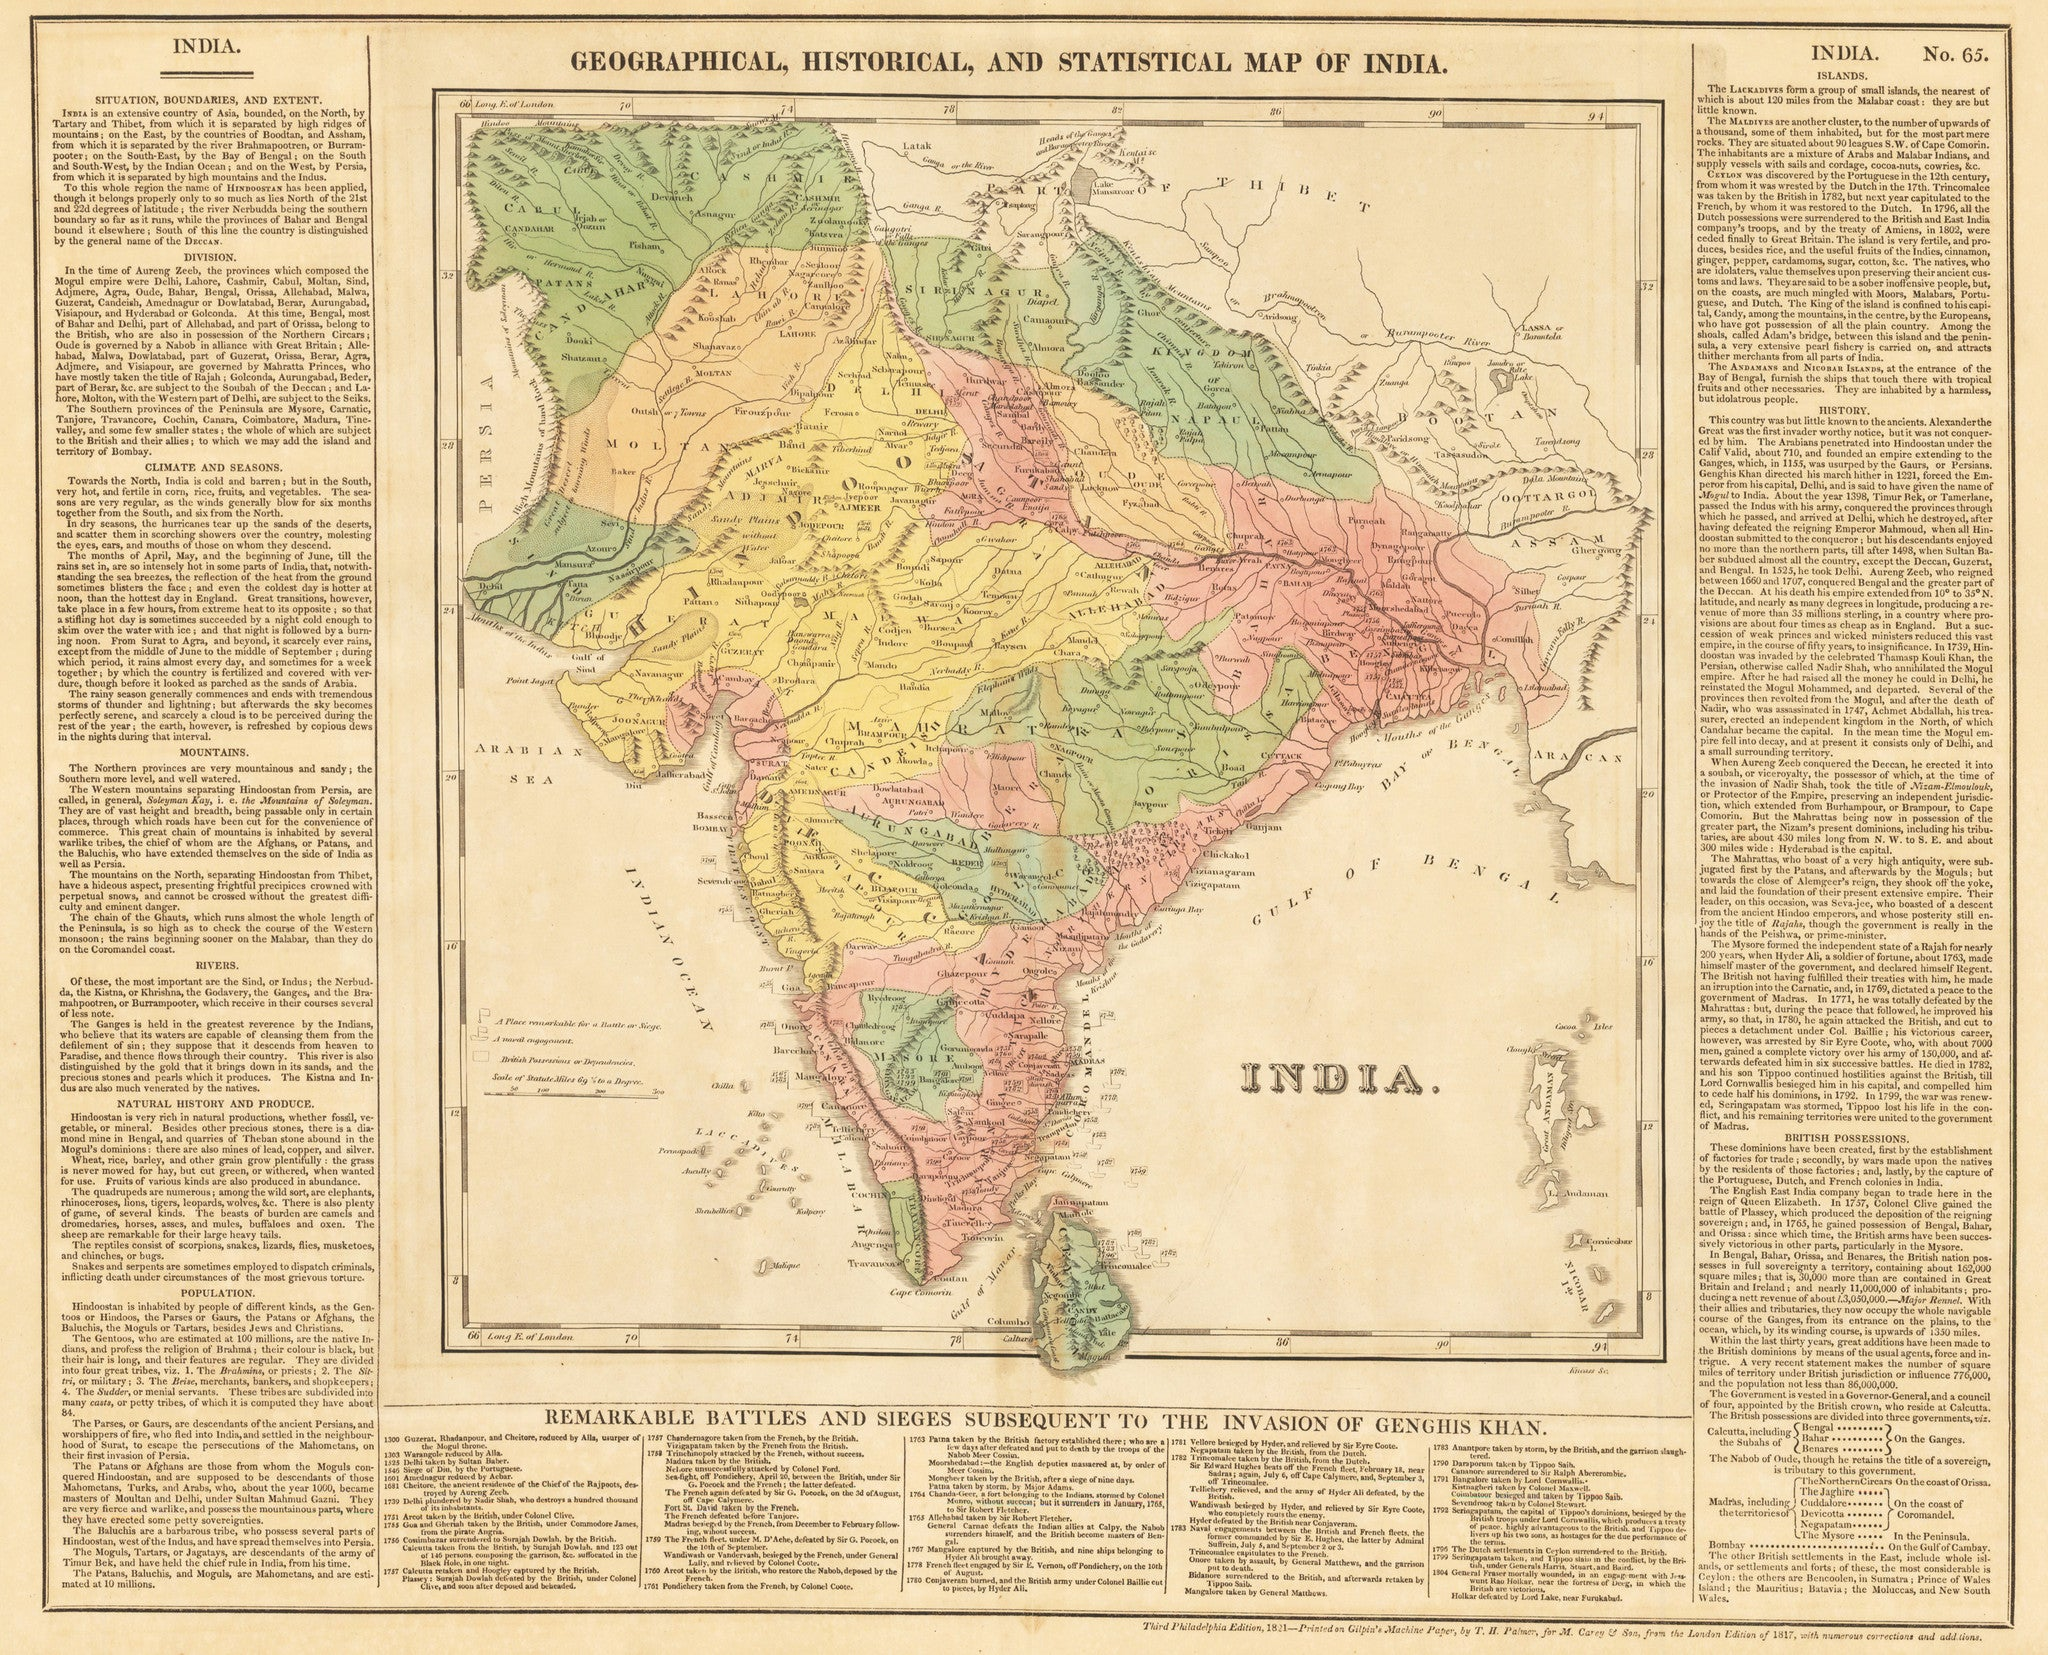 1821 Geographical, Historical, and Statistical Map of India